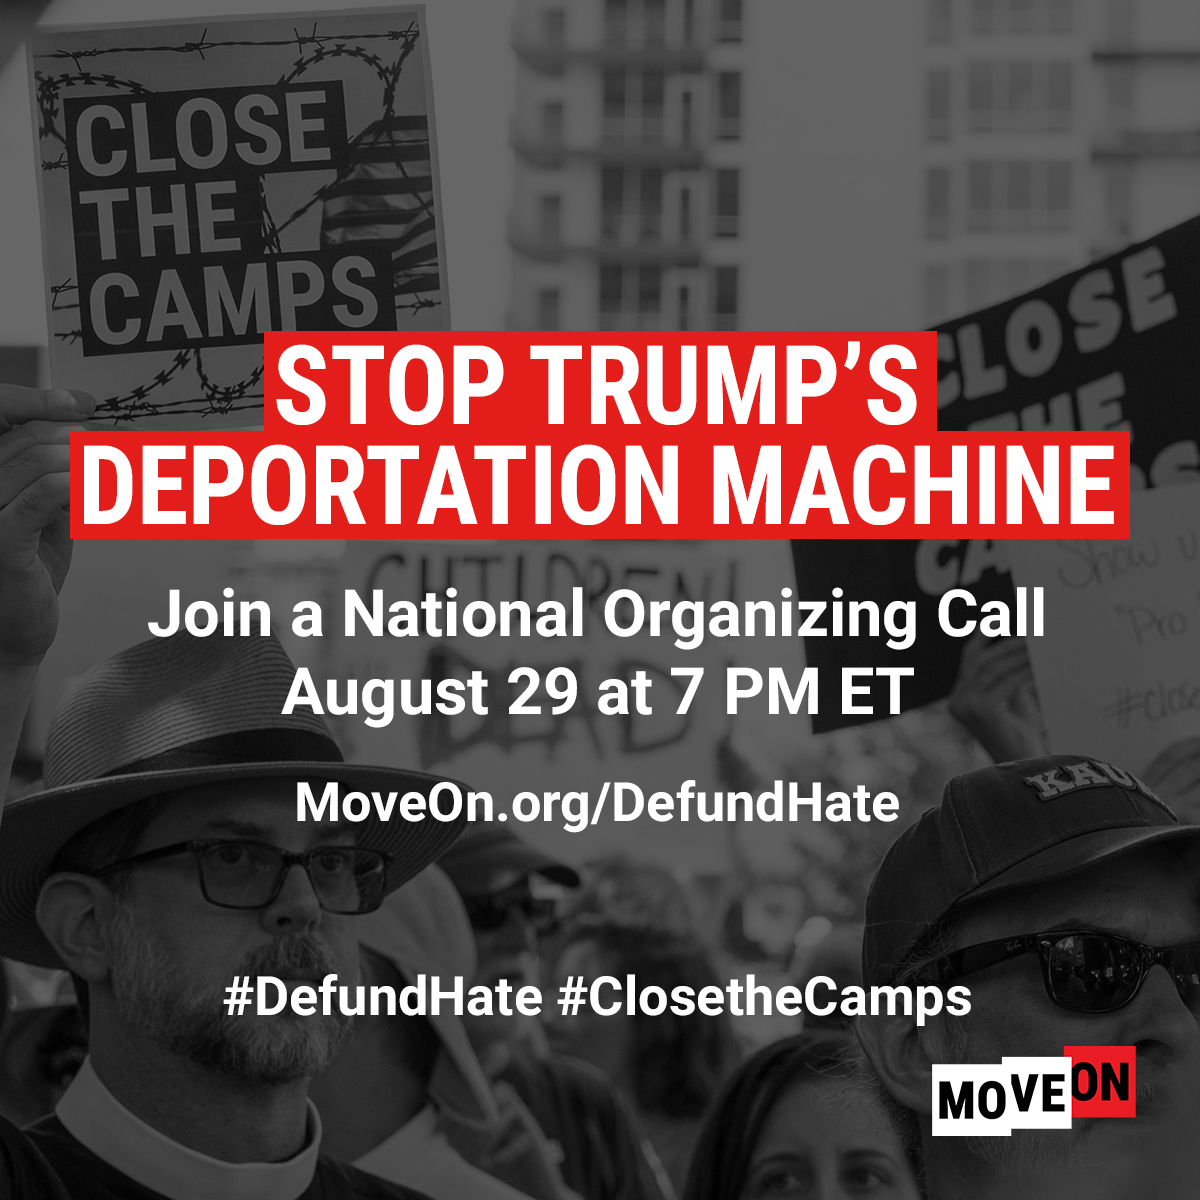 RSVP to join the national organizing call.